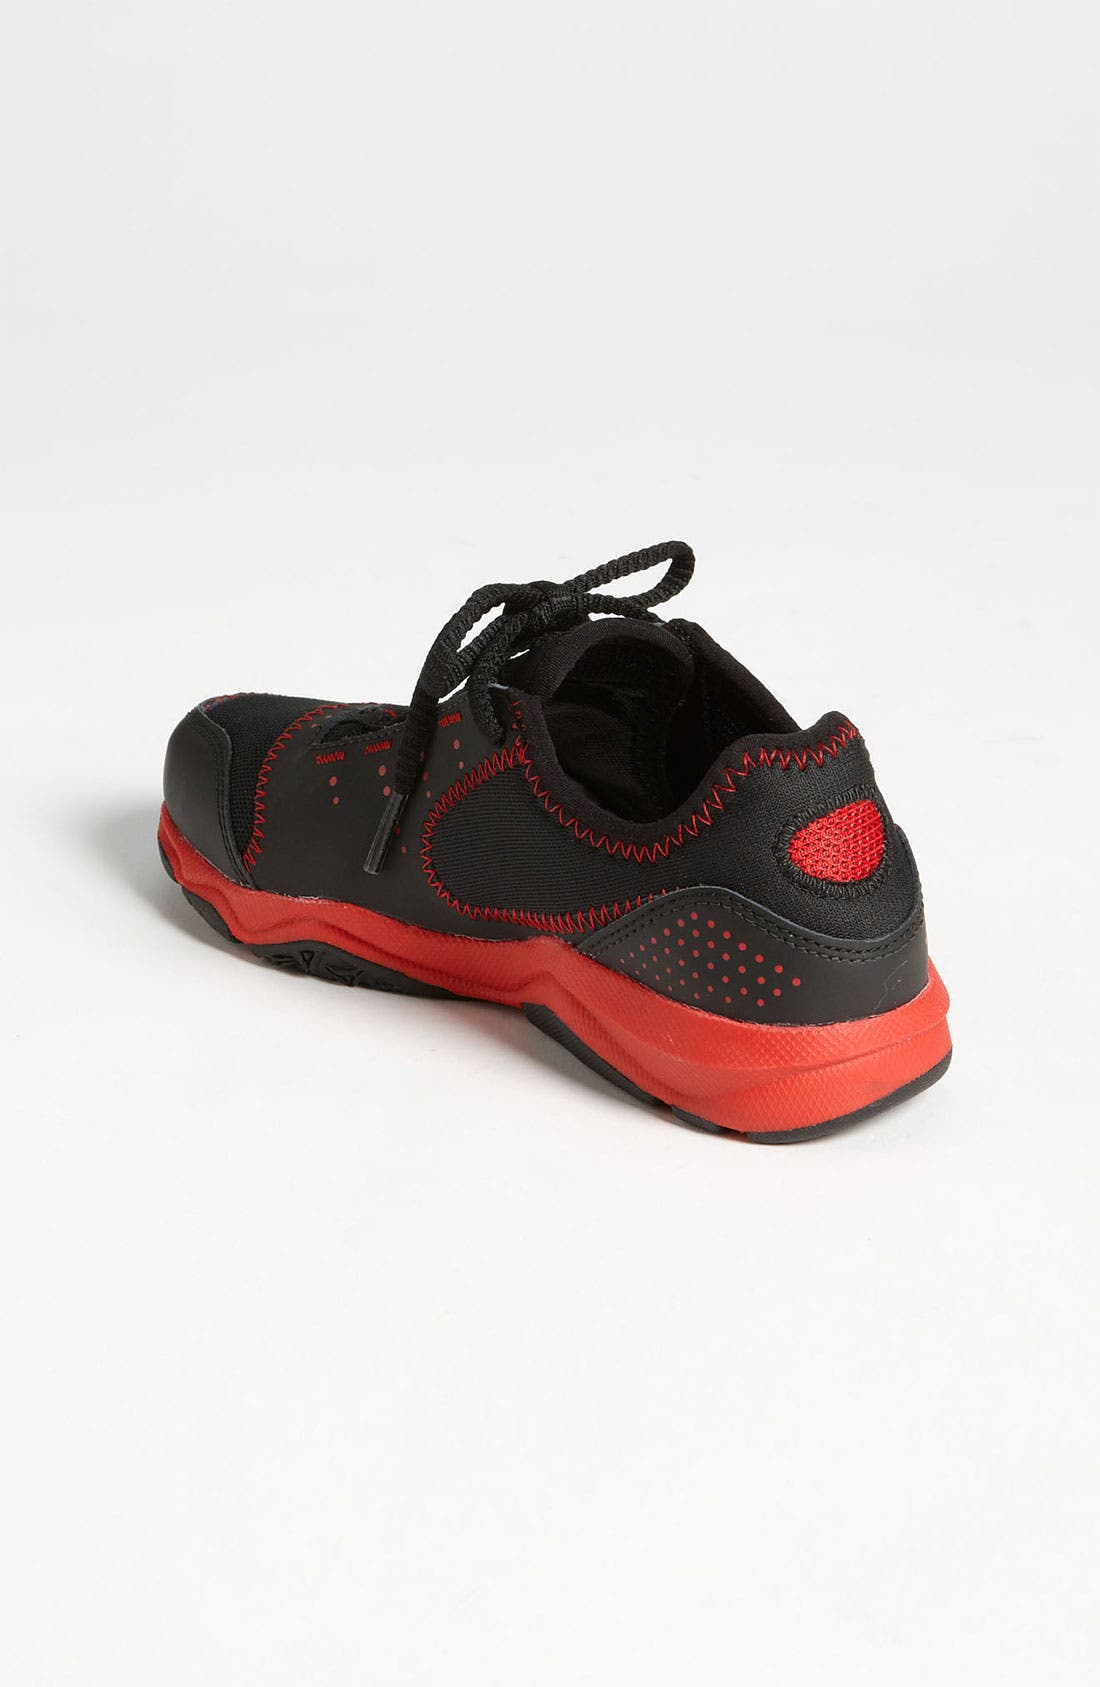 Alternate Image 2  - Under Armour 'Defend' Sneaker (Toddler, Little Kid & Big Kid)